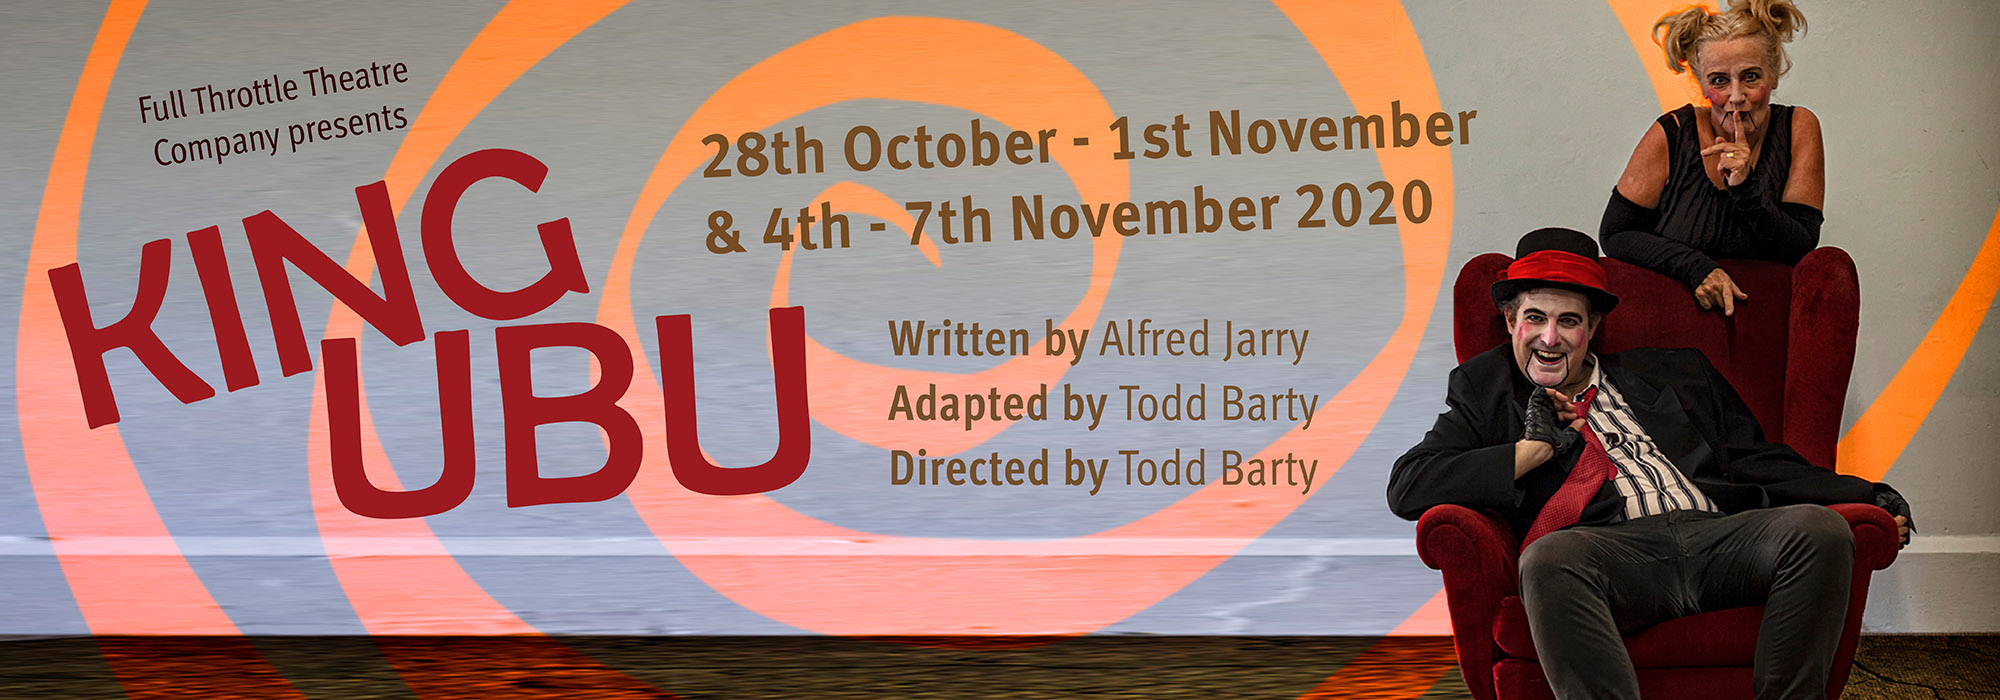 King Ubu - 28th October - 1st November and 4-7th November 2020